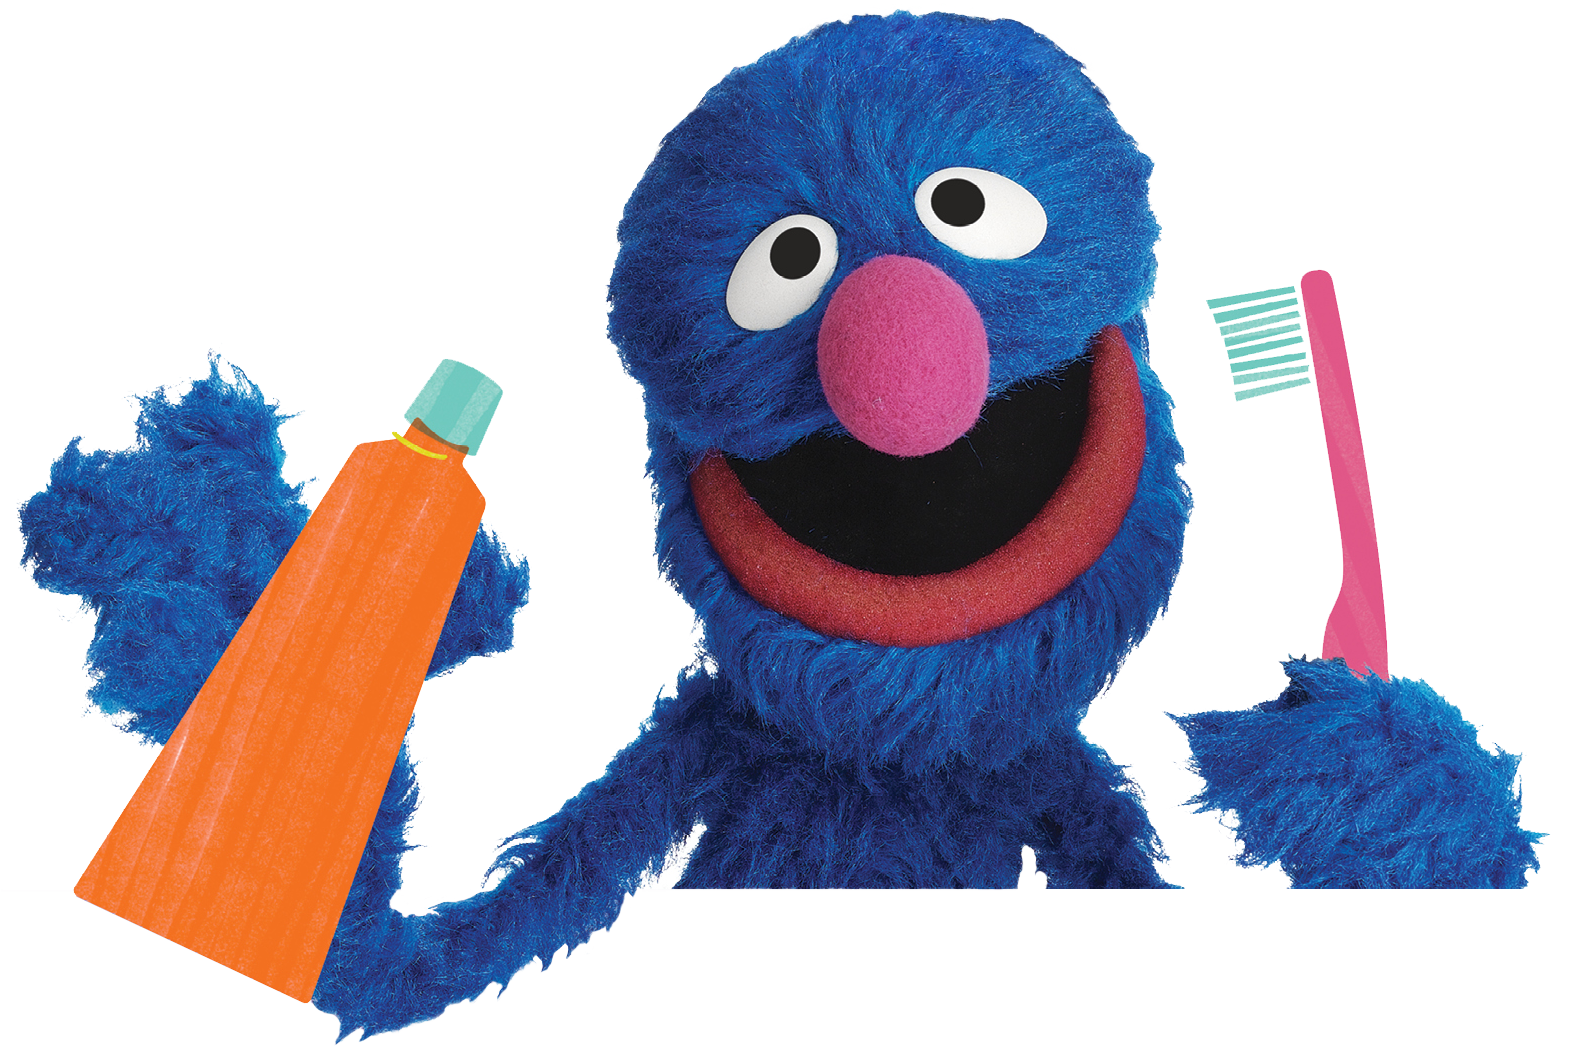 Grover holding toothbrush and toothpaste